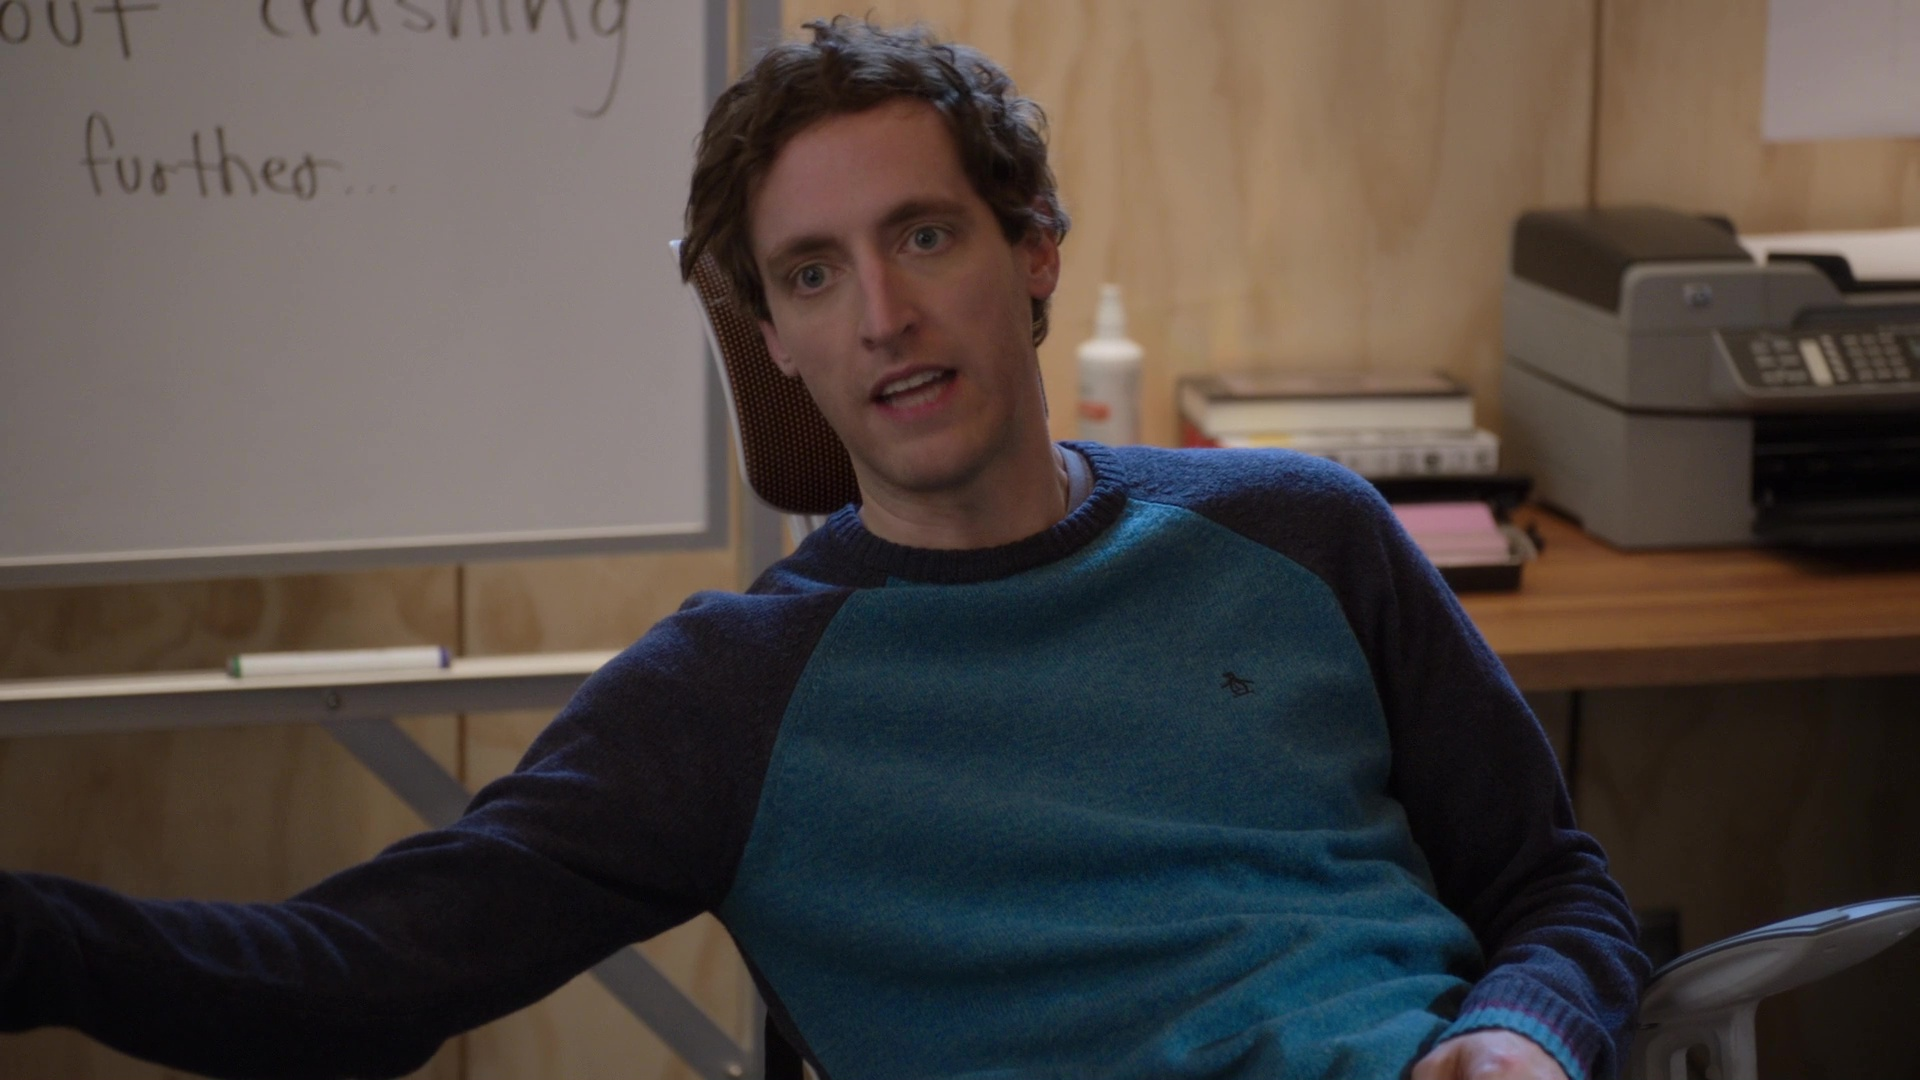 Original Penguin Sweater Worn By Thomas Middleditch In